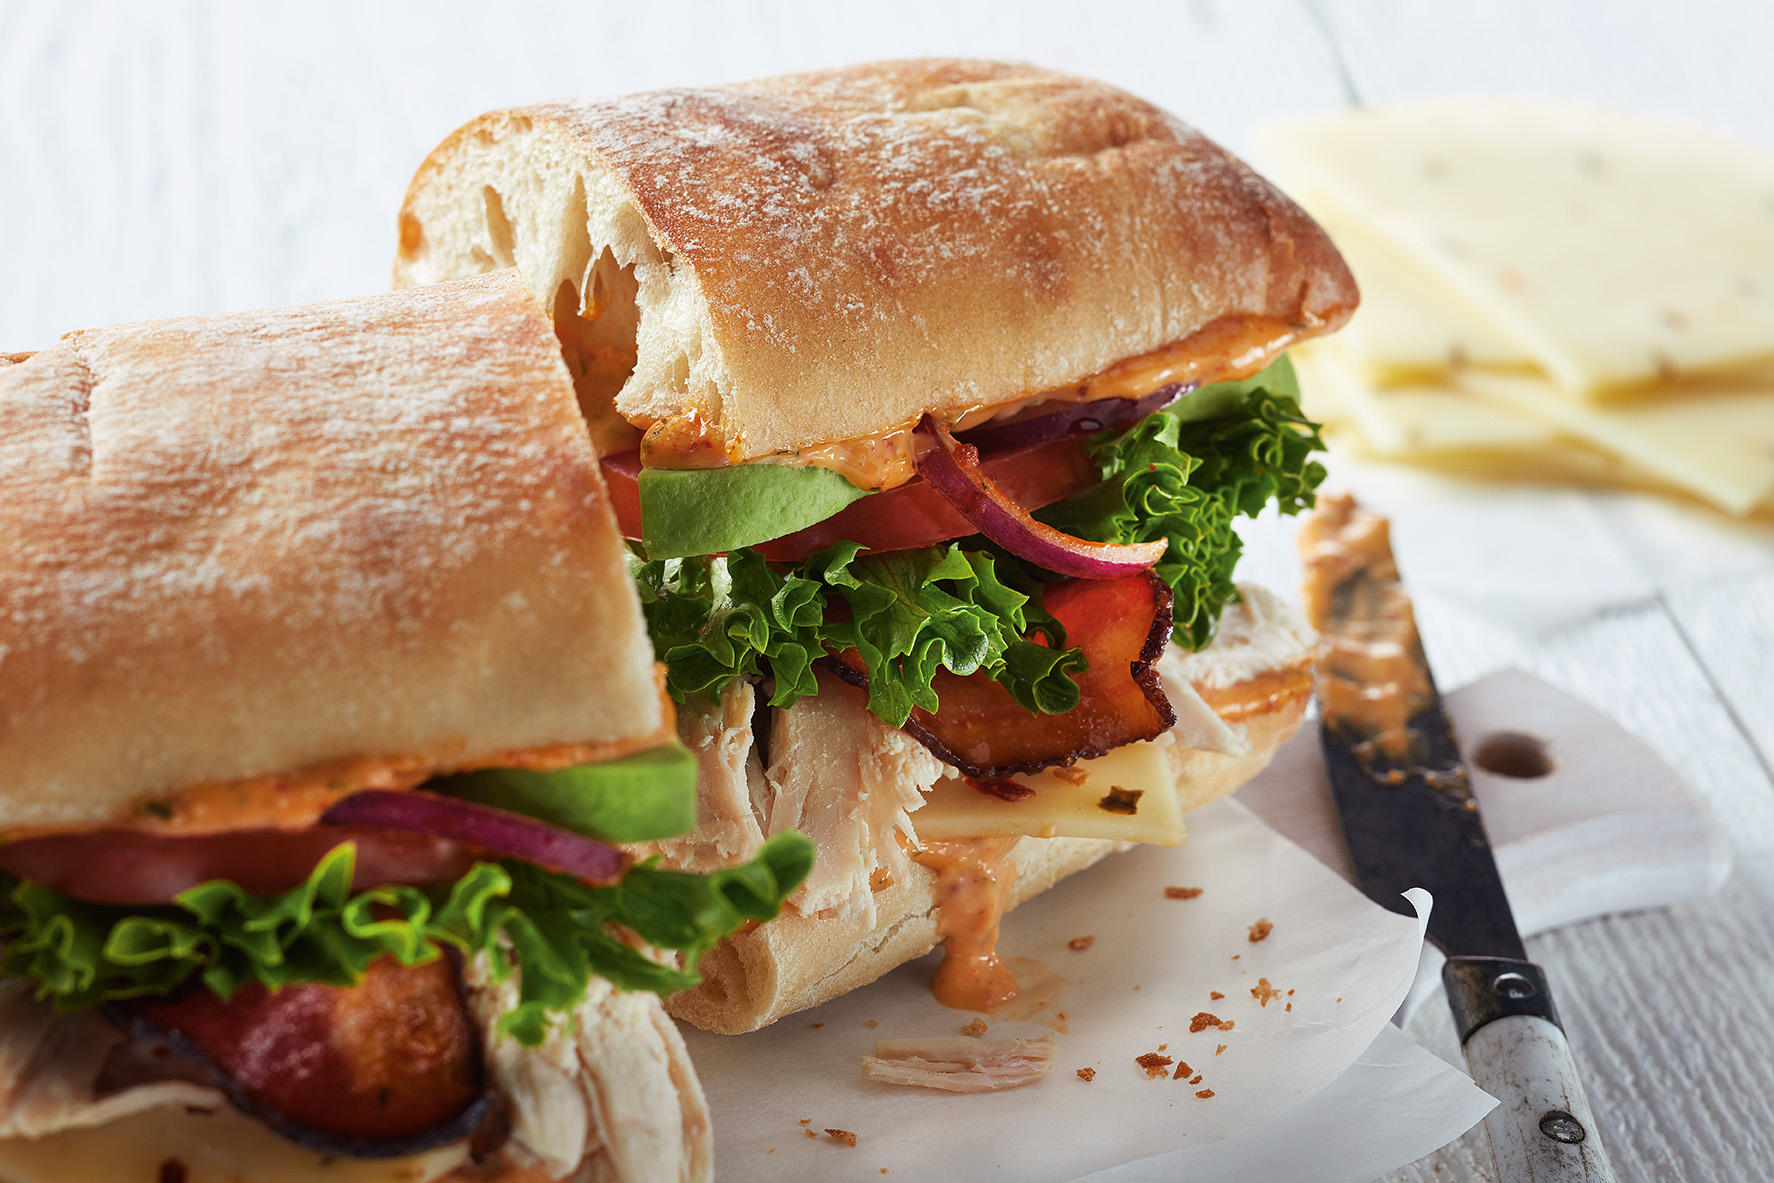 Southwest Chicken BLT on Ciabatta